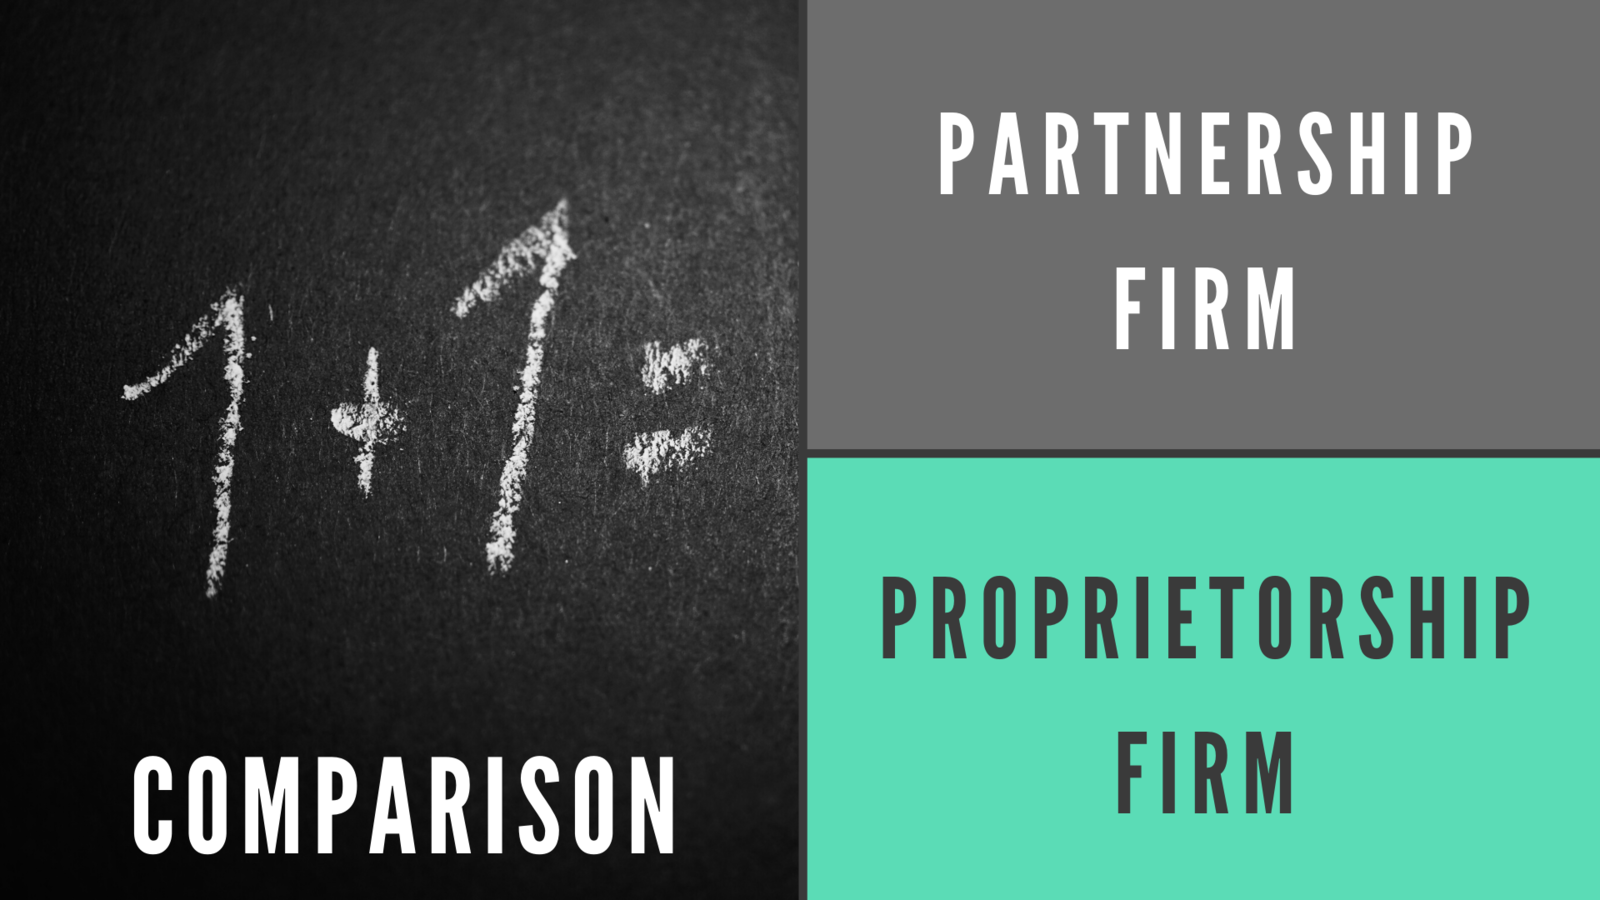 Clear Comparison between Partnership Firm and Proprietorship in India